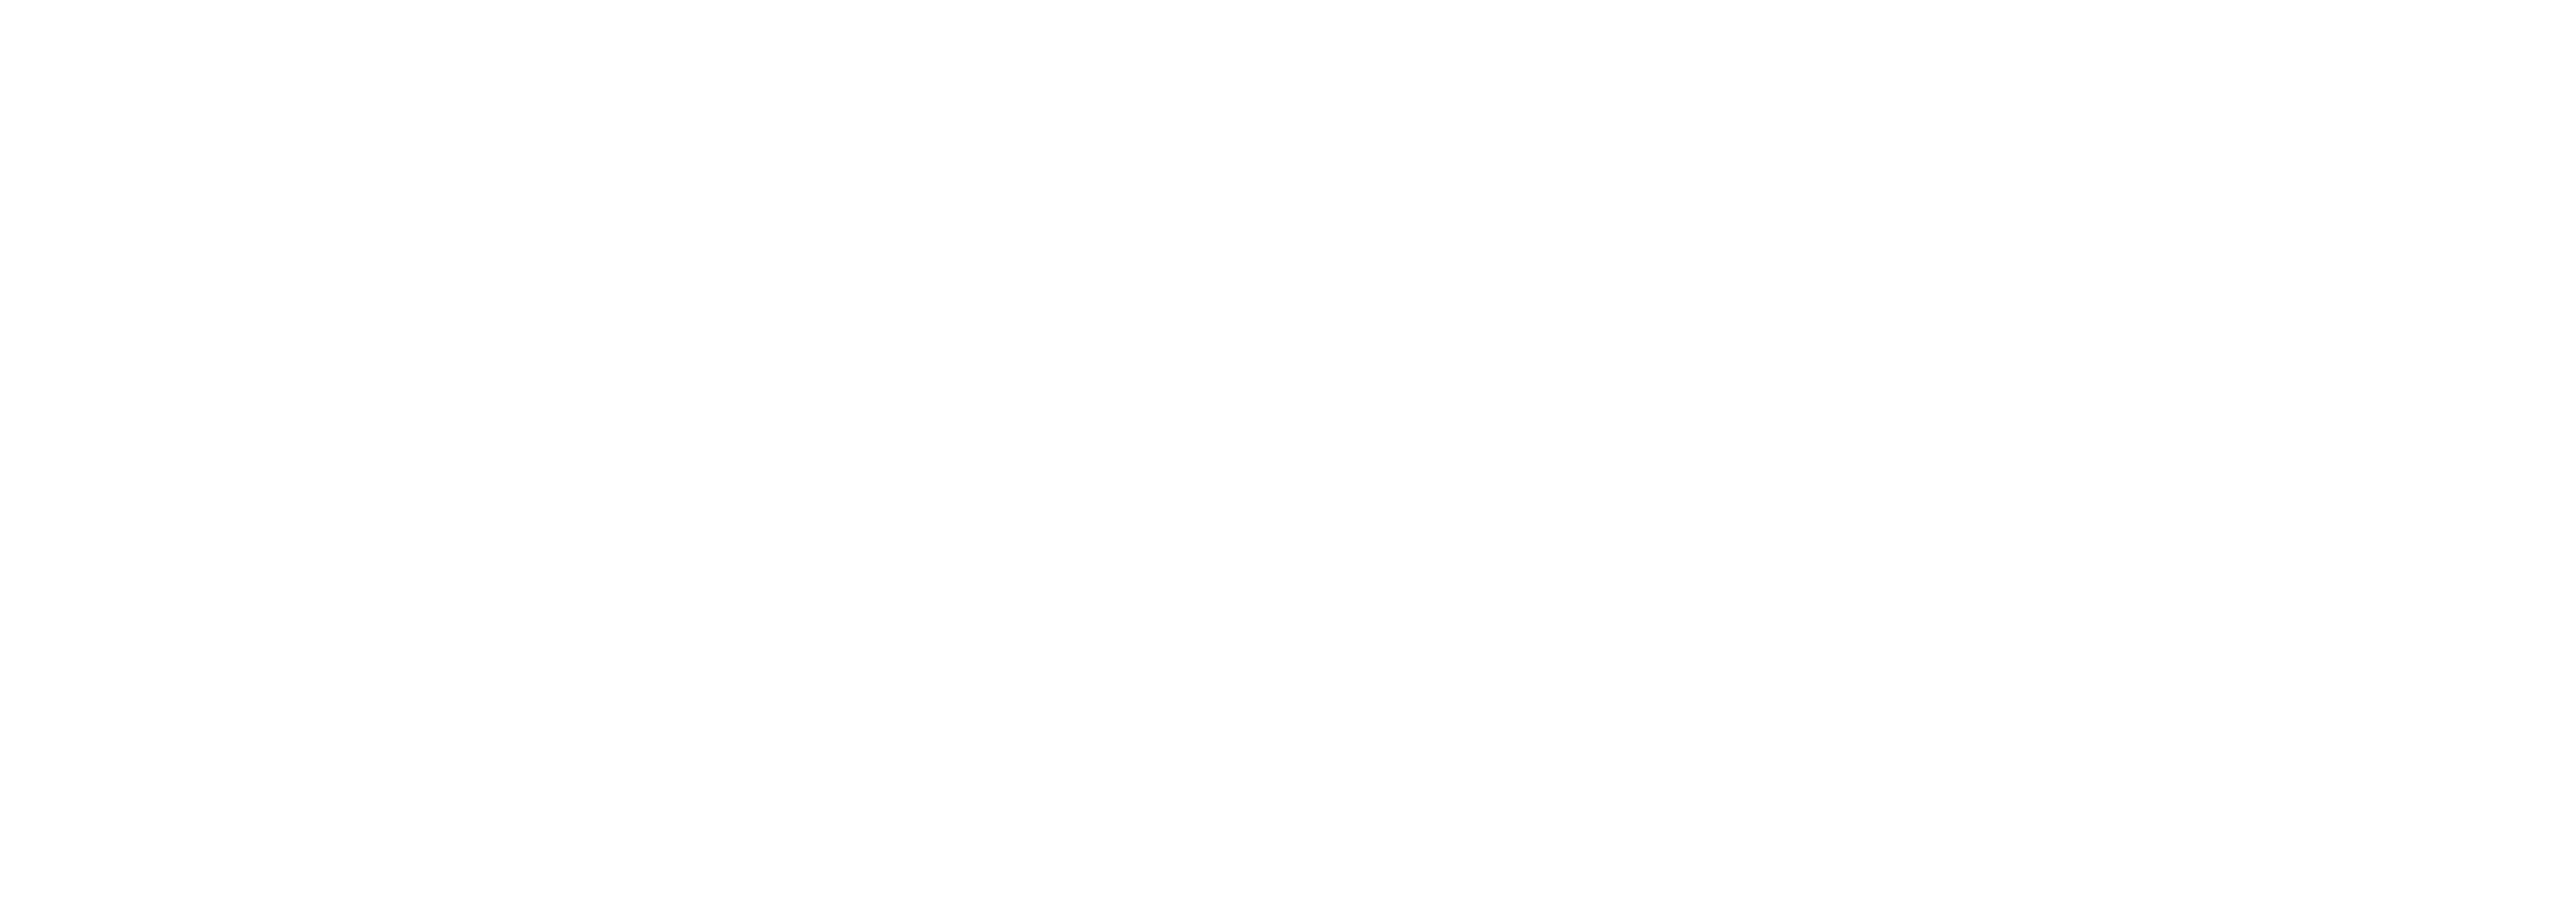 Vestal's Florist - Flower Delivery in Greensboro, NC